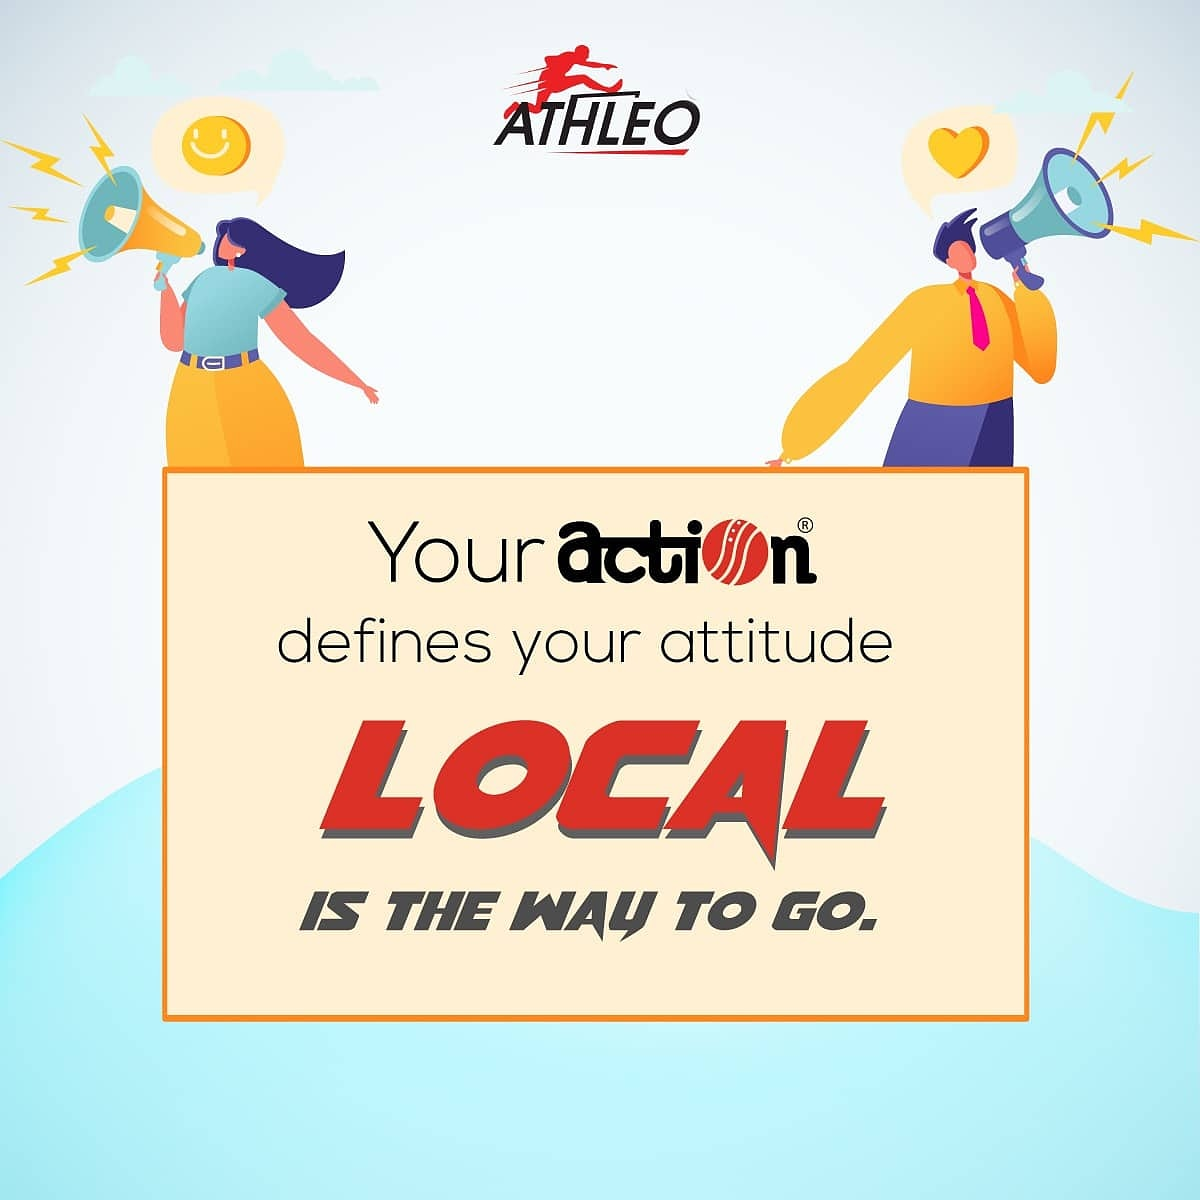 Choose local. Give our nation's workers a chance to rebound.  #vocalforlocal #buylocal #smallbusinesses #supportsmallbusiness #smallbusinessowner #coronavirus #india #narendramodi #golocal #athleo #actionshoes #lockdown #quarantine #ShoeShopping #Shoes #Confidence #Fitness #Age https://t.co/Yj2NKs29Az